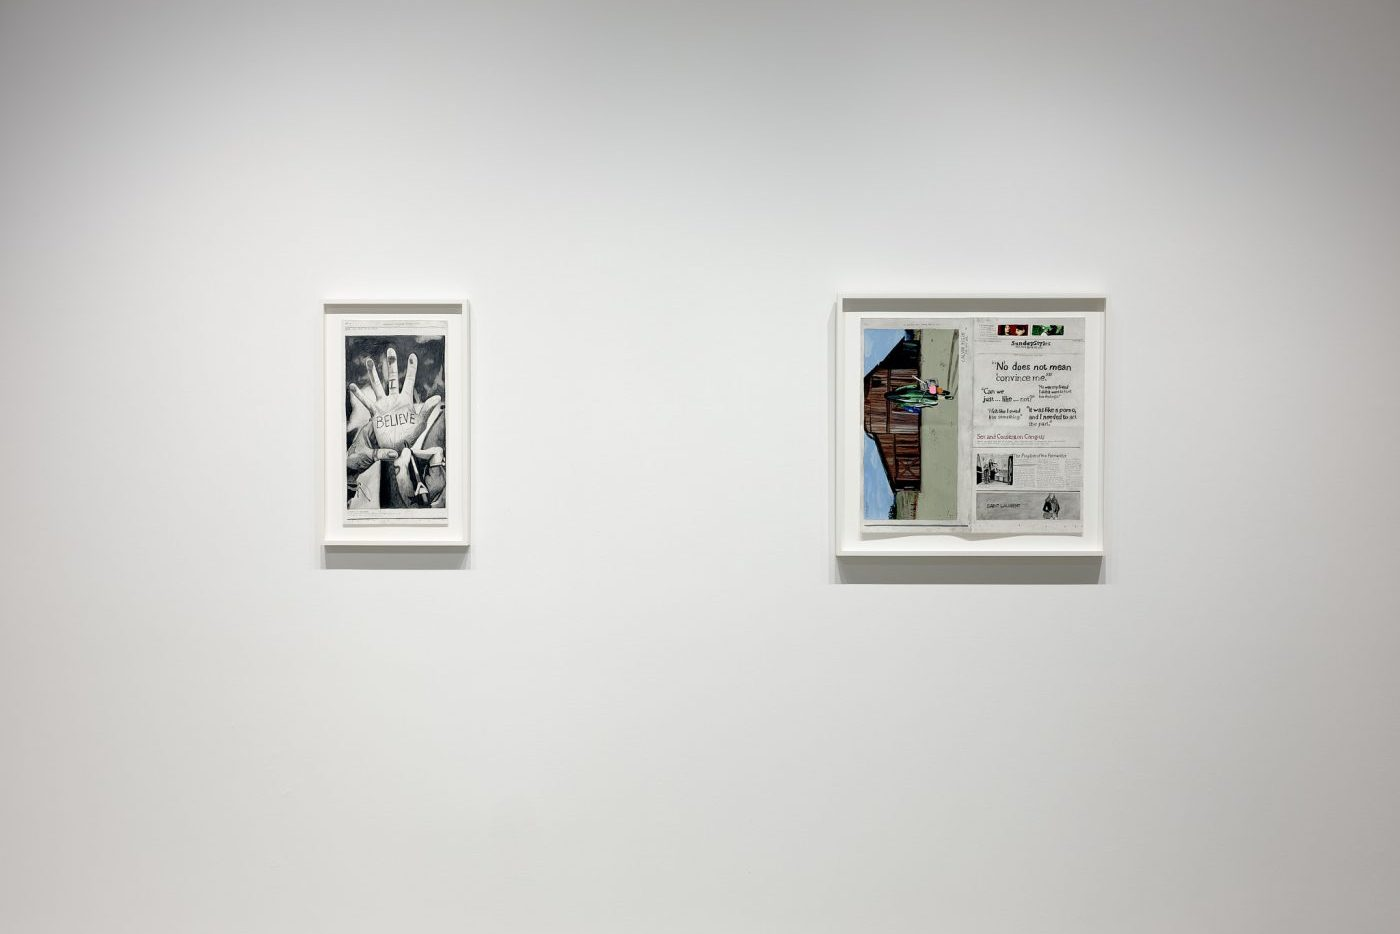 "two pieces hang on a white wall: the first seems to be an image from a newspaper clipping of a hand with the words ""I BELIEVE"" written on the palm in pen; the second features a landscape image on its side of a figure walking toward the camera and away from a barn, alongside a copy of the front page of a newspaper, the headline reading ""No does not mean convince me."""